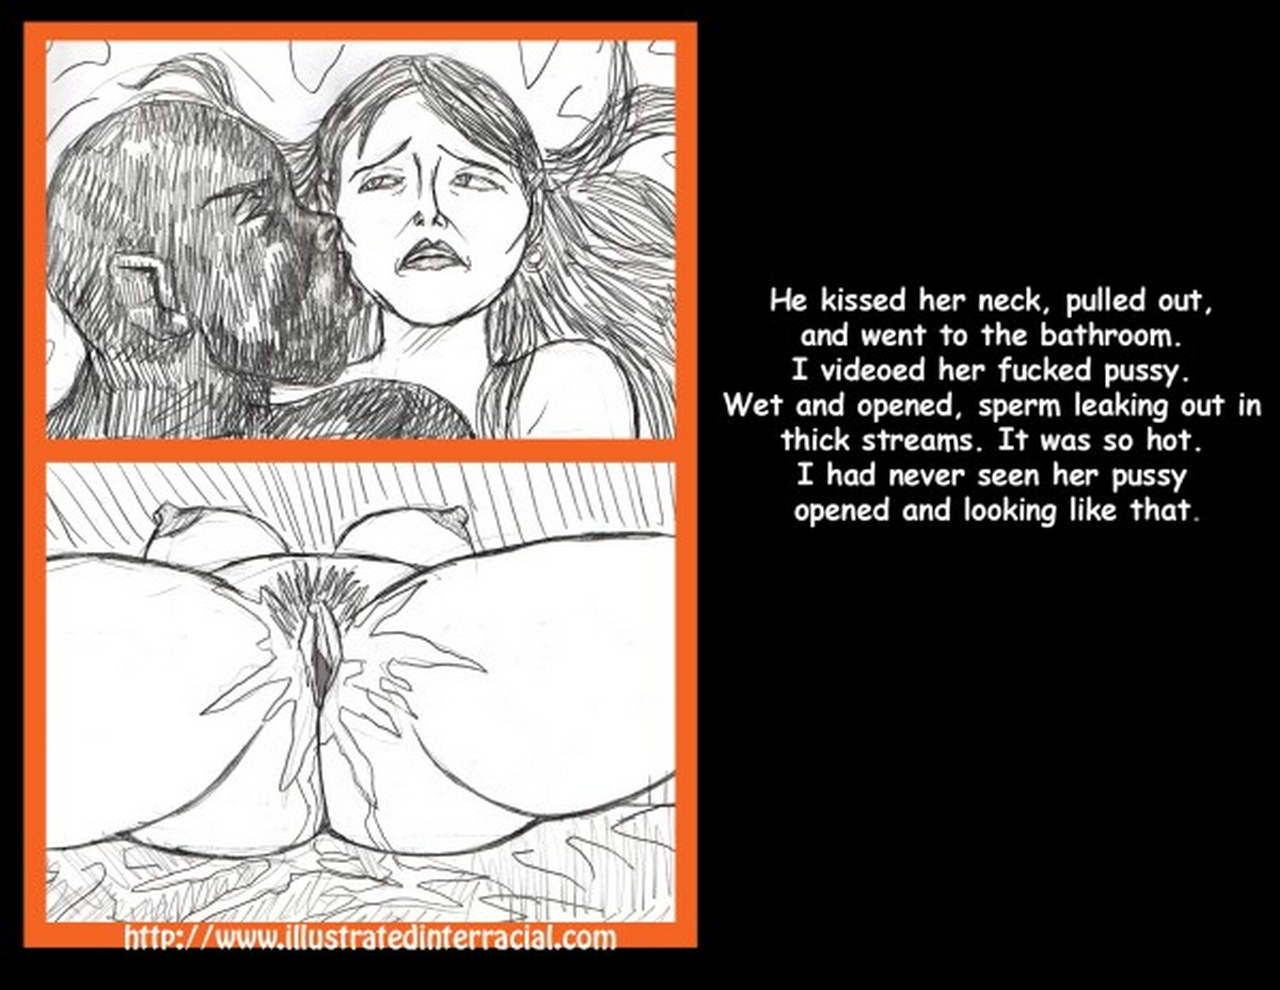 Pimped-Out-1 16 free sex comic